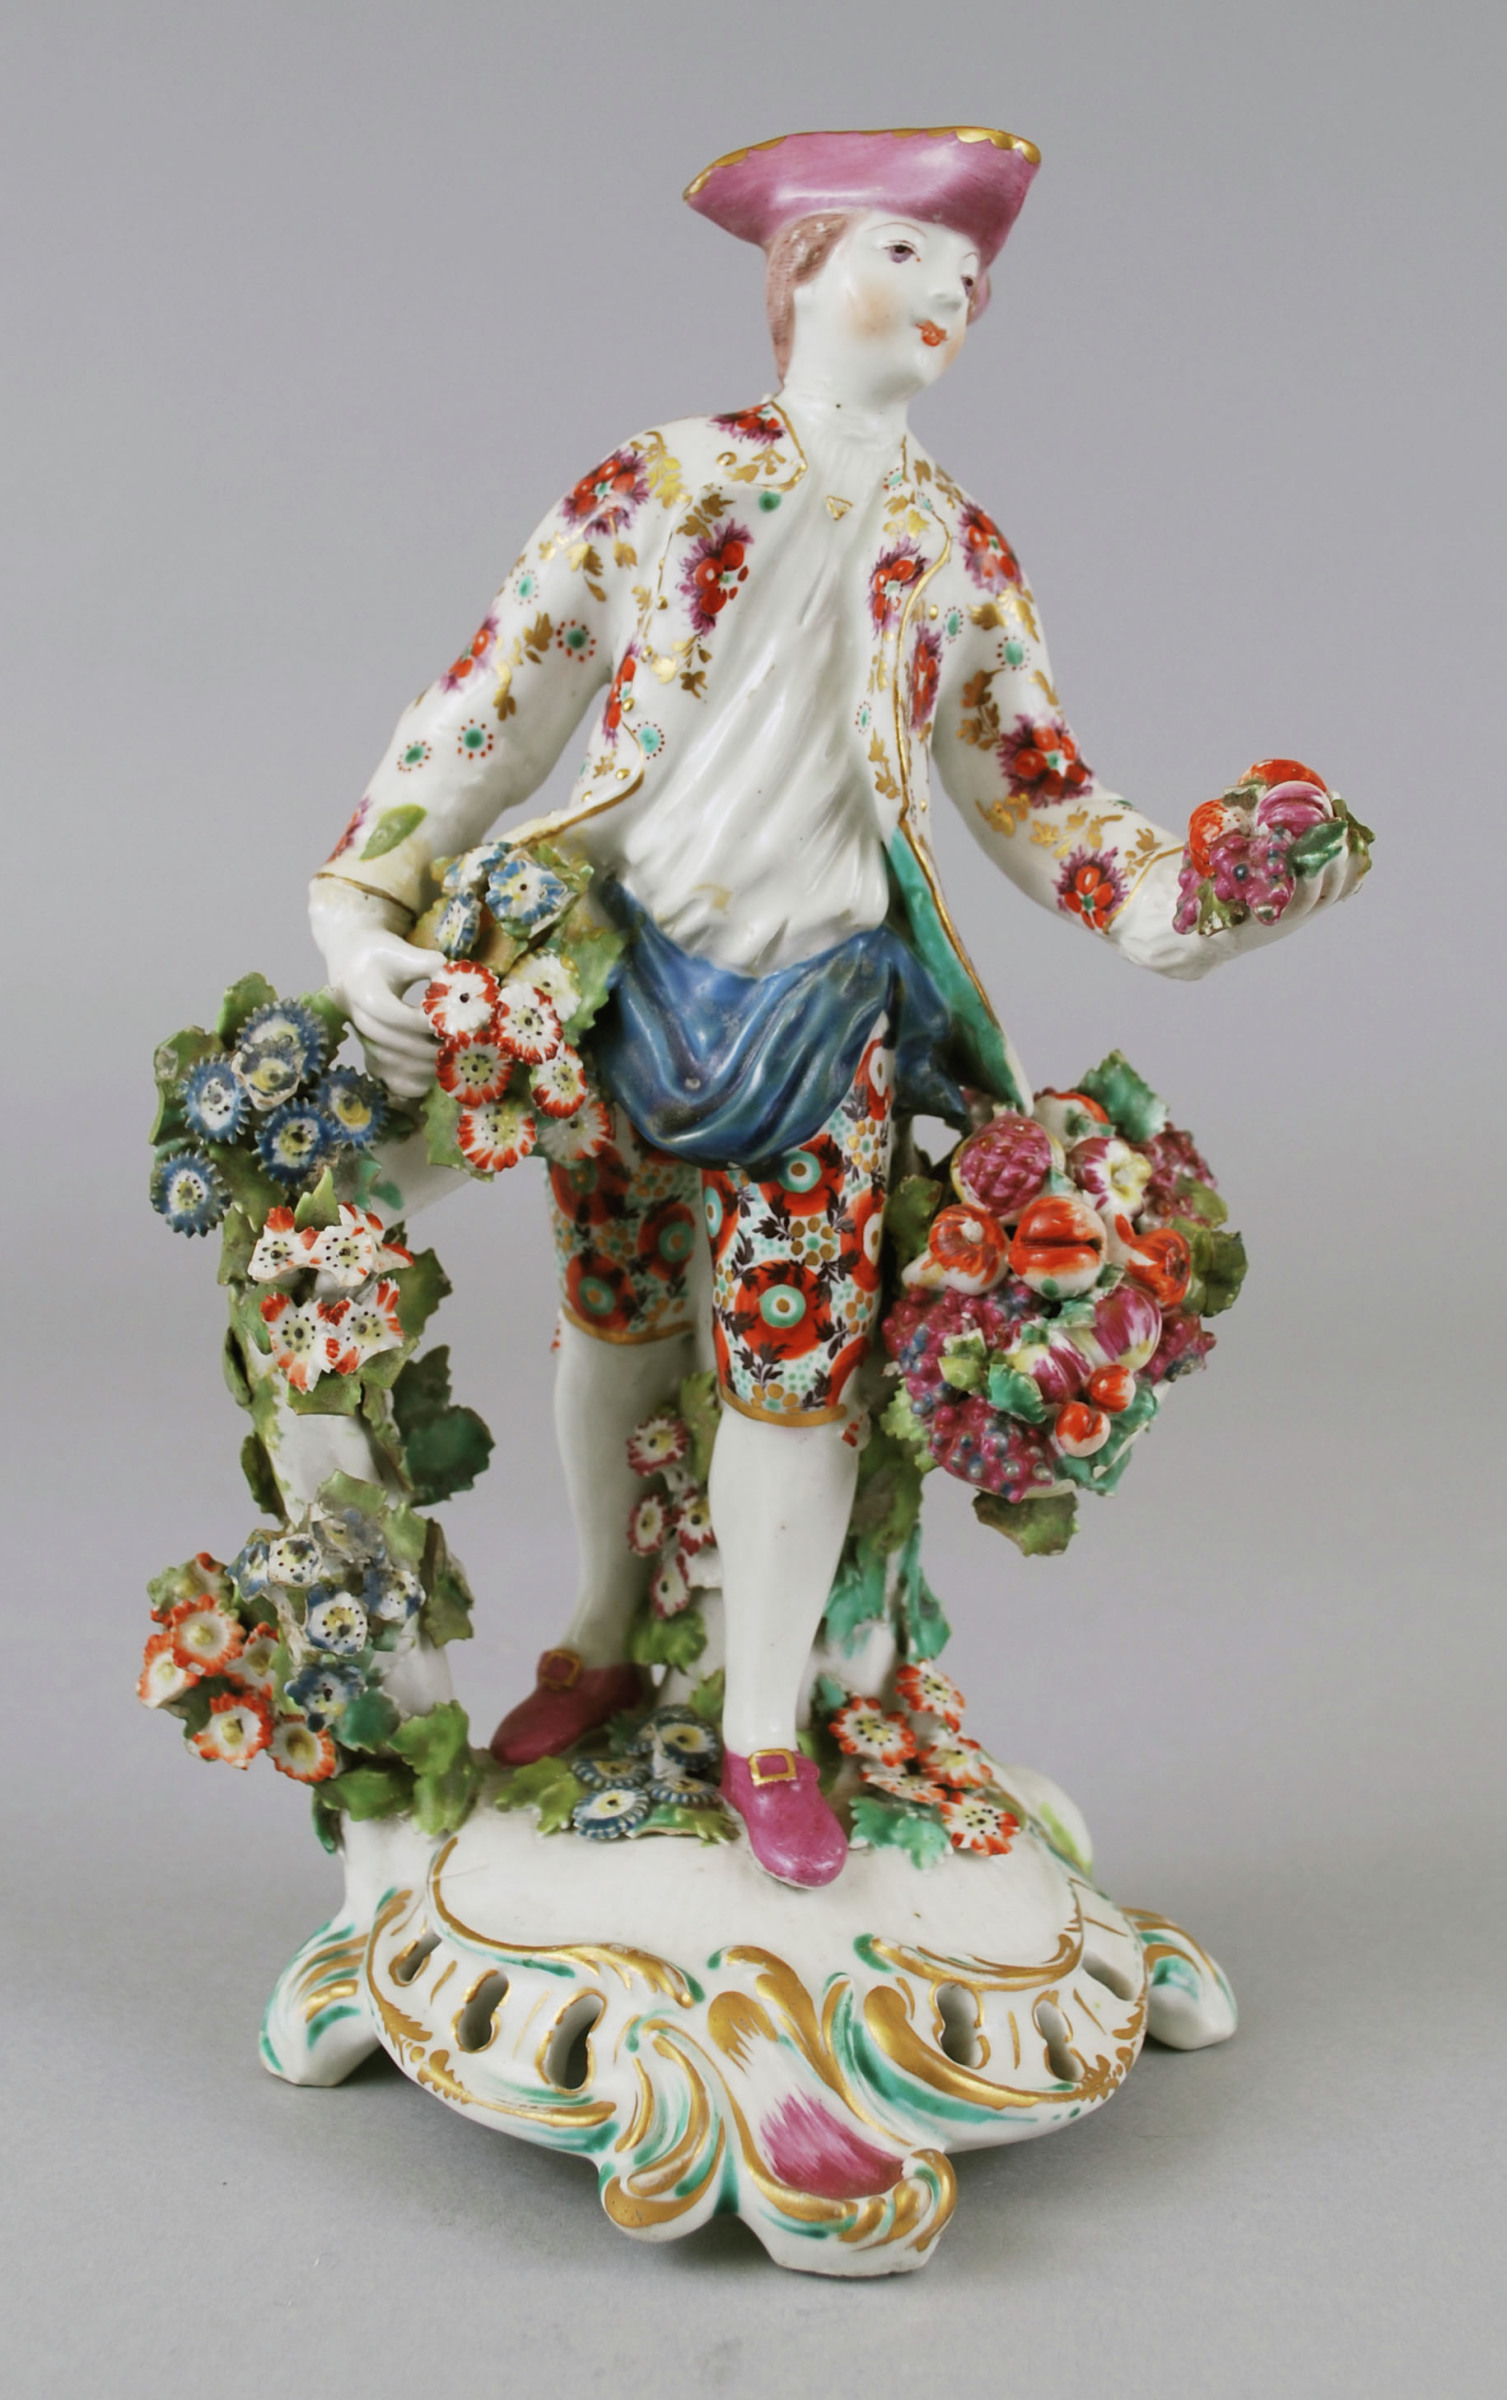 Soft-paste porcelain figure of a man selling fruit, emblematic of autumn, standing in full figure on a pierced rococo base highlighted in gold, green and puce, to his right a flowering branch that offers the figure support, around his waist a blue apron bag holding a bunch of various fruits and additional fruits are in his outstretched left hand, wearing flowered britches and jacket, with puce hat and shoes.